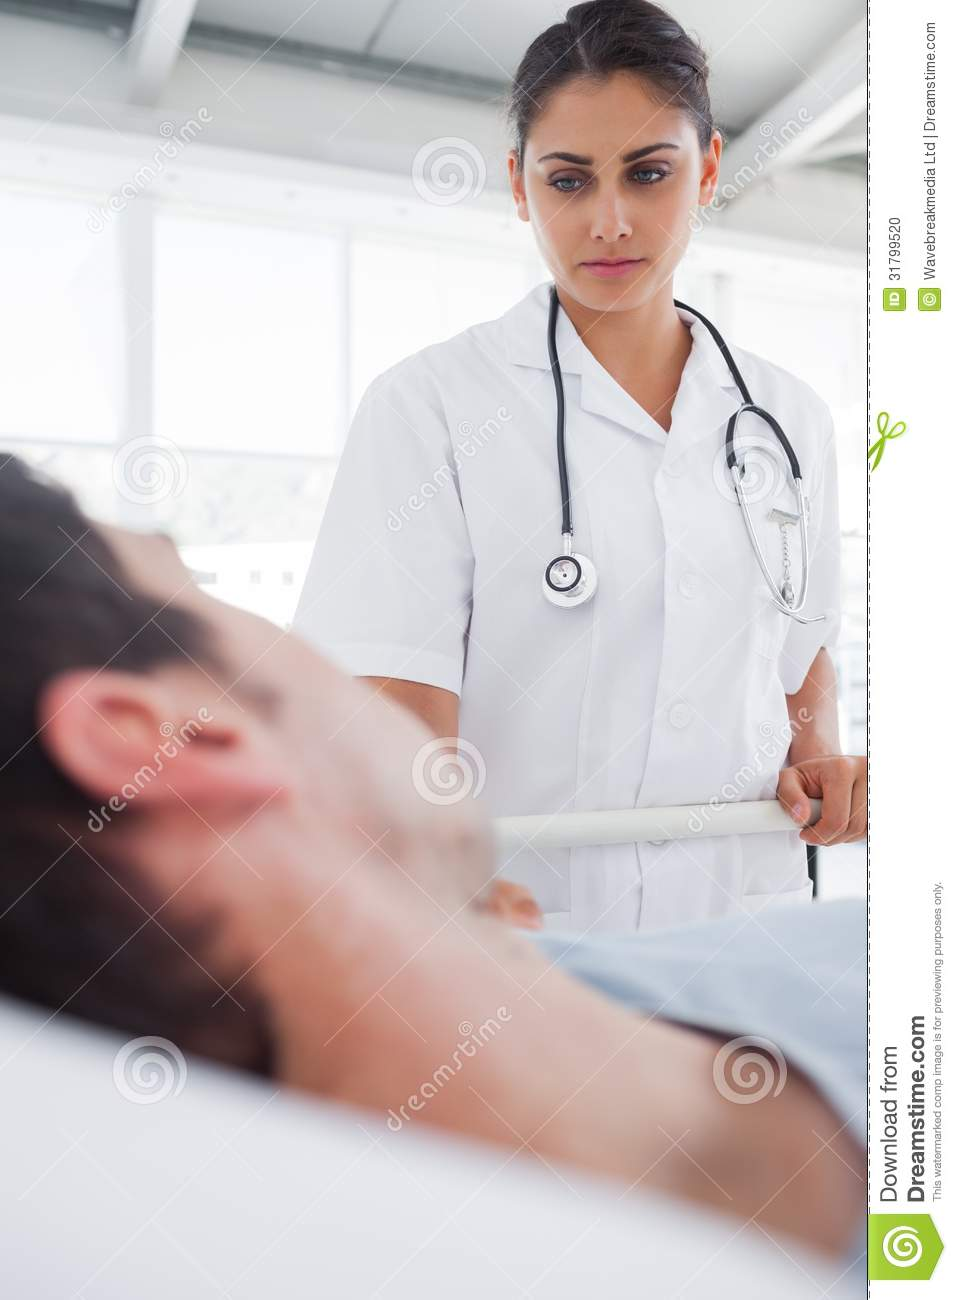 Serious Nurse Taking Care Of A Patient Stock Photo - Image ...